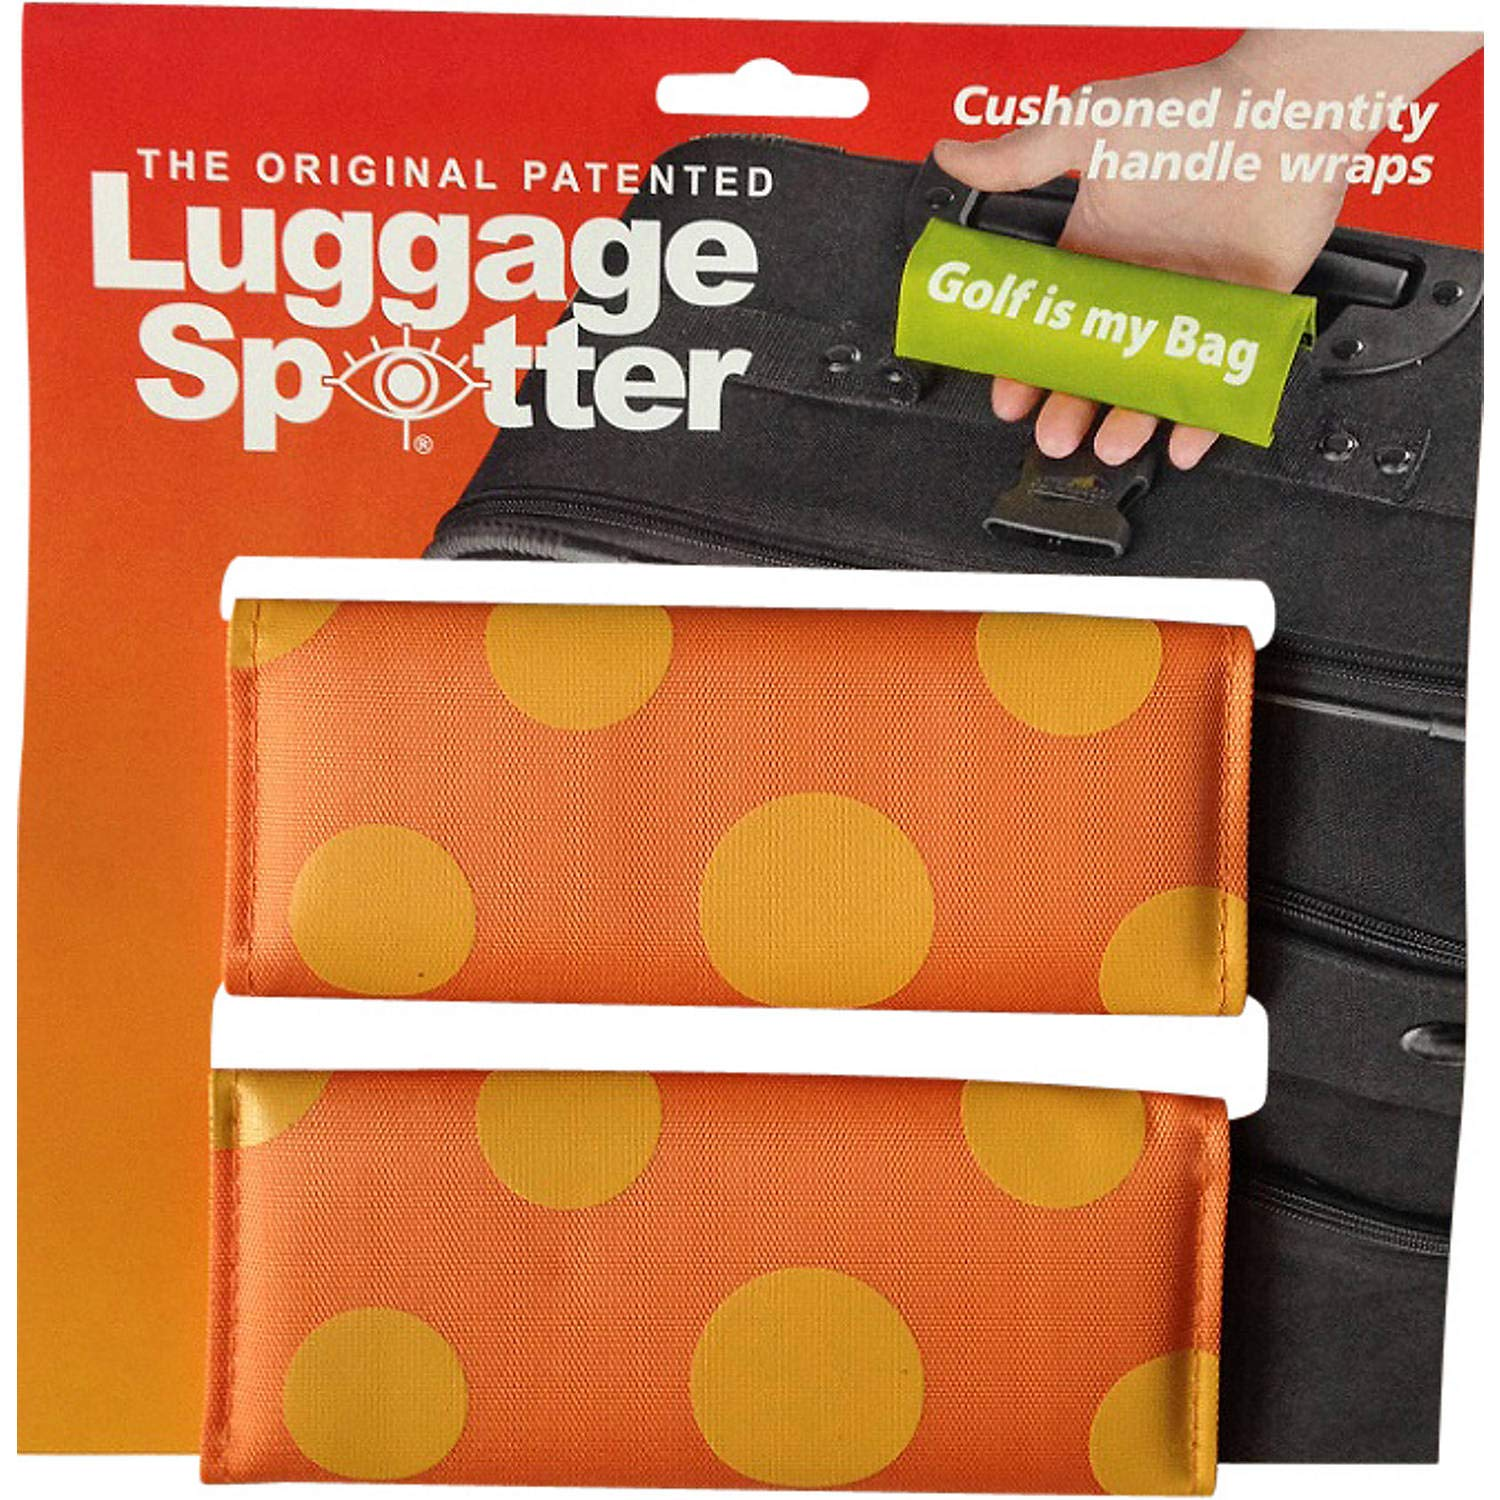 ORANGE POLKA DOT Luggage Spotter Luggage Locator/Handle Grip/Luggage Grip/Travel Bag Tag/Luggage Handle Wrap (2-pack) – CLOSEOUT! ALMOST GONE!